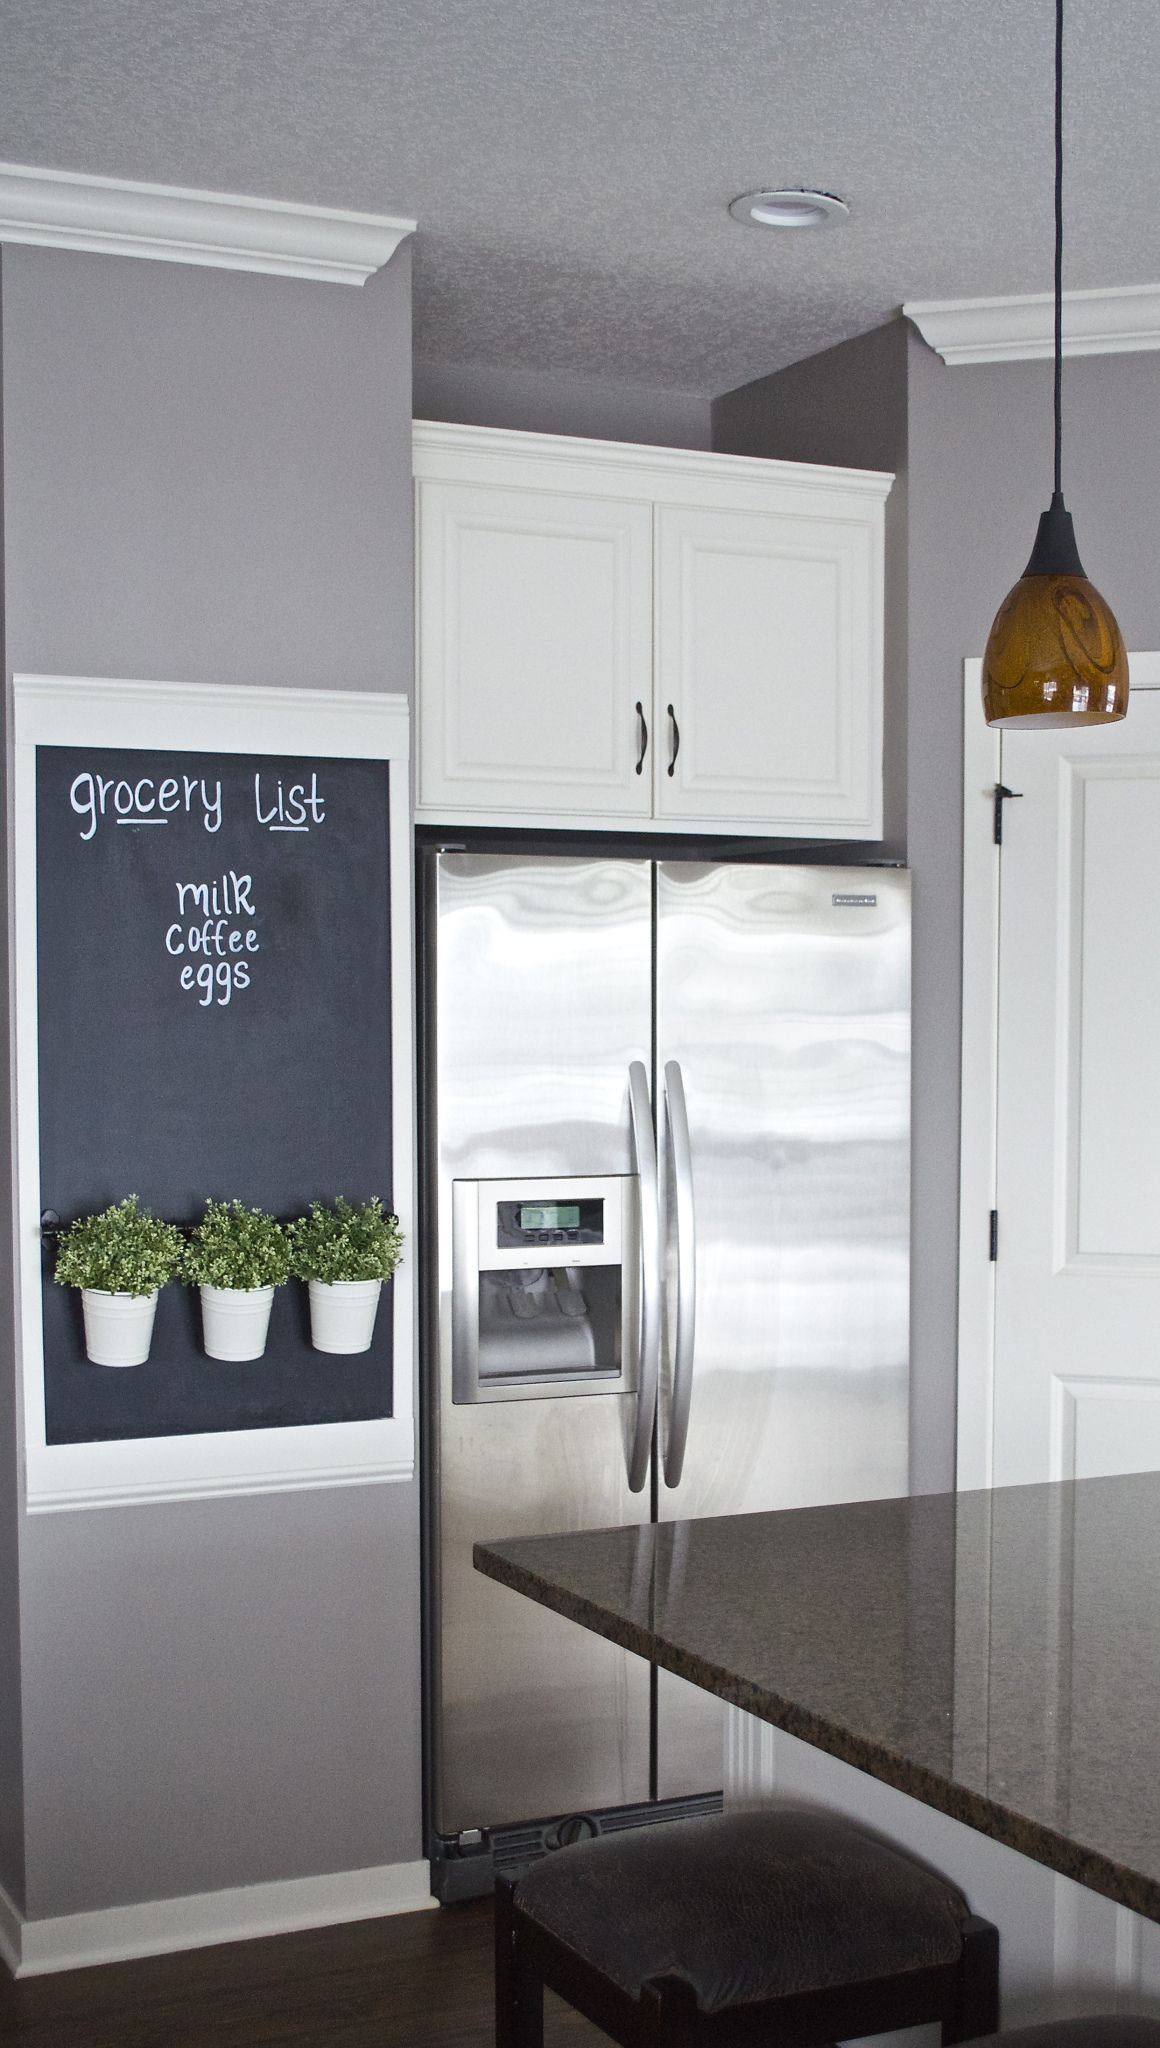 Transform an awkward wall into a chalkboard wall. @thehatchedhome did a fabulous job, and I want a grocery list wall in my kitchen, too! /ES